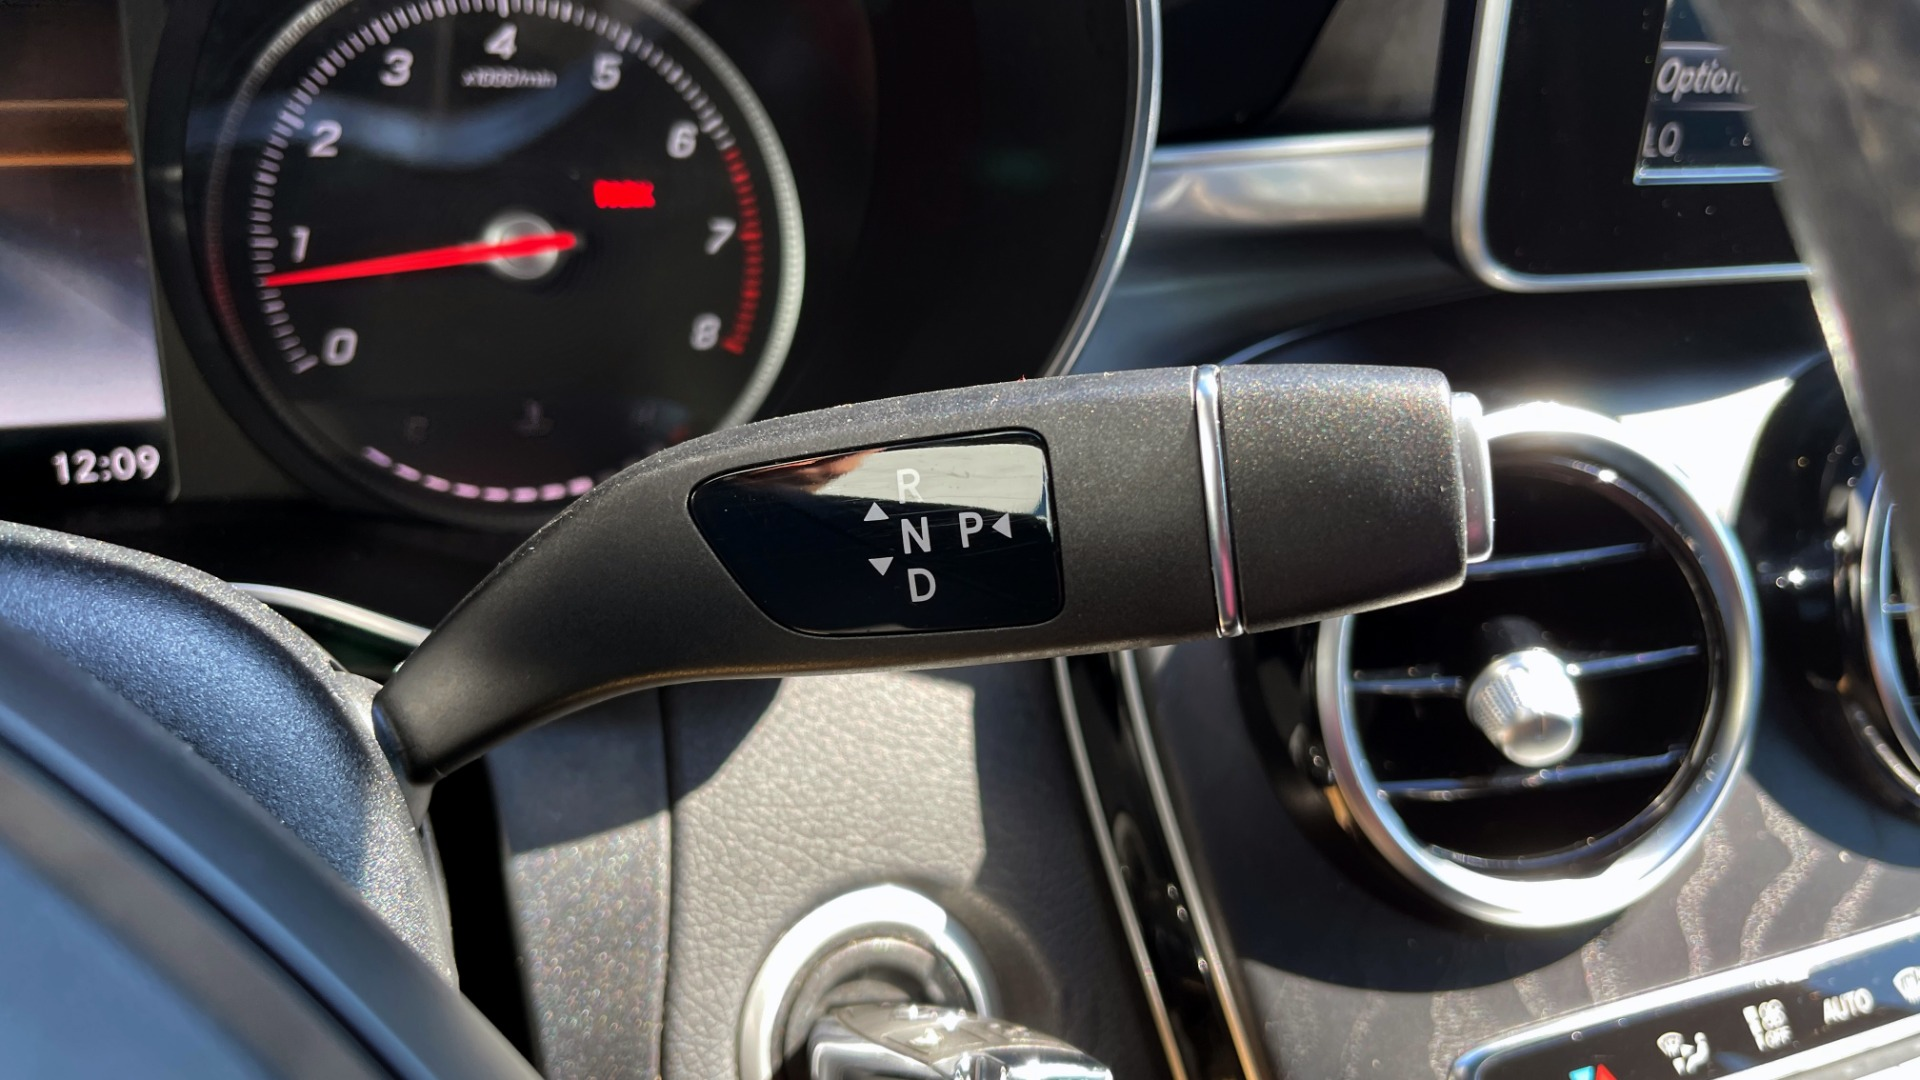 Used 2018 Mercedes-Benz C-CLASS C 300 PREMIUM / APPLE CARPLAY / KEYLESS-GO / SUNROOF / REARVIEW for sale $32,995 at Formula Imports in Charlotte NC 28227 30